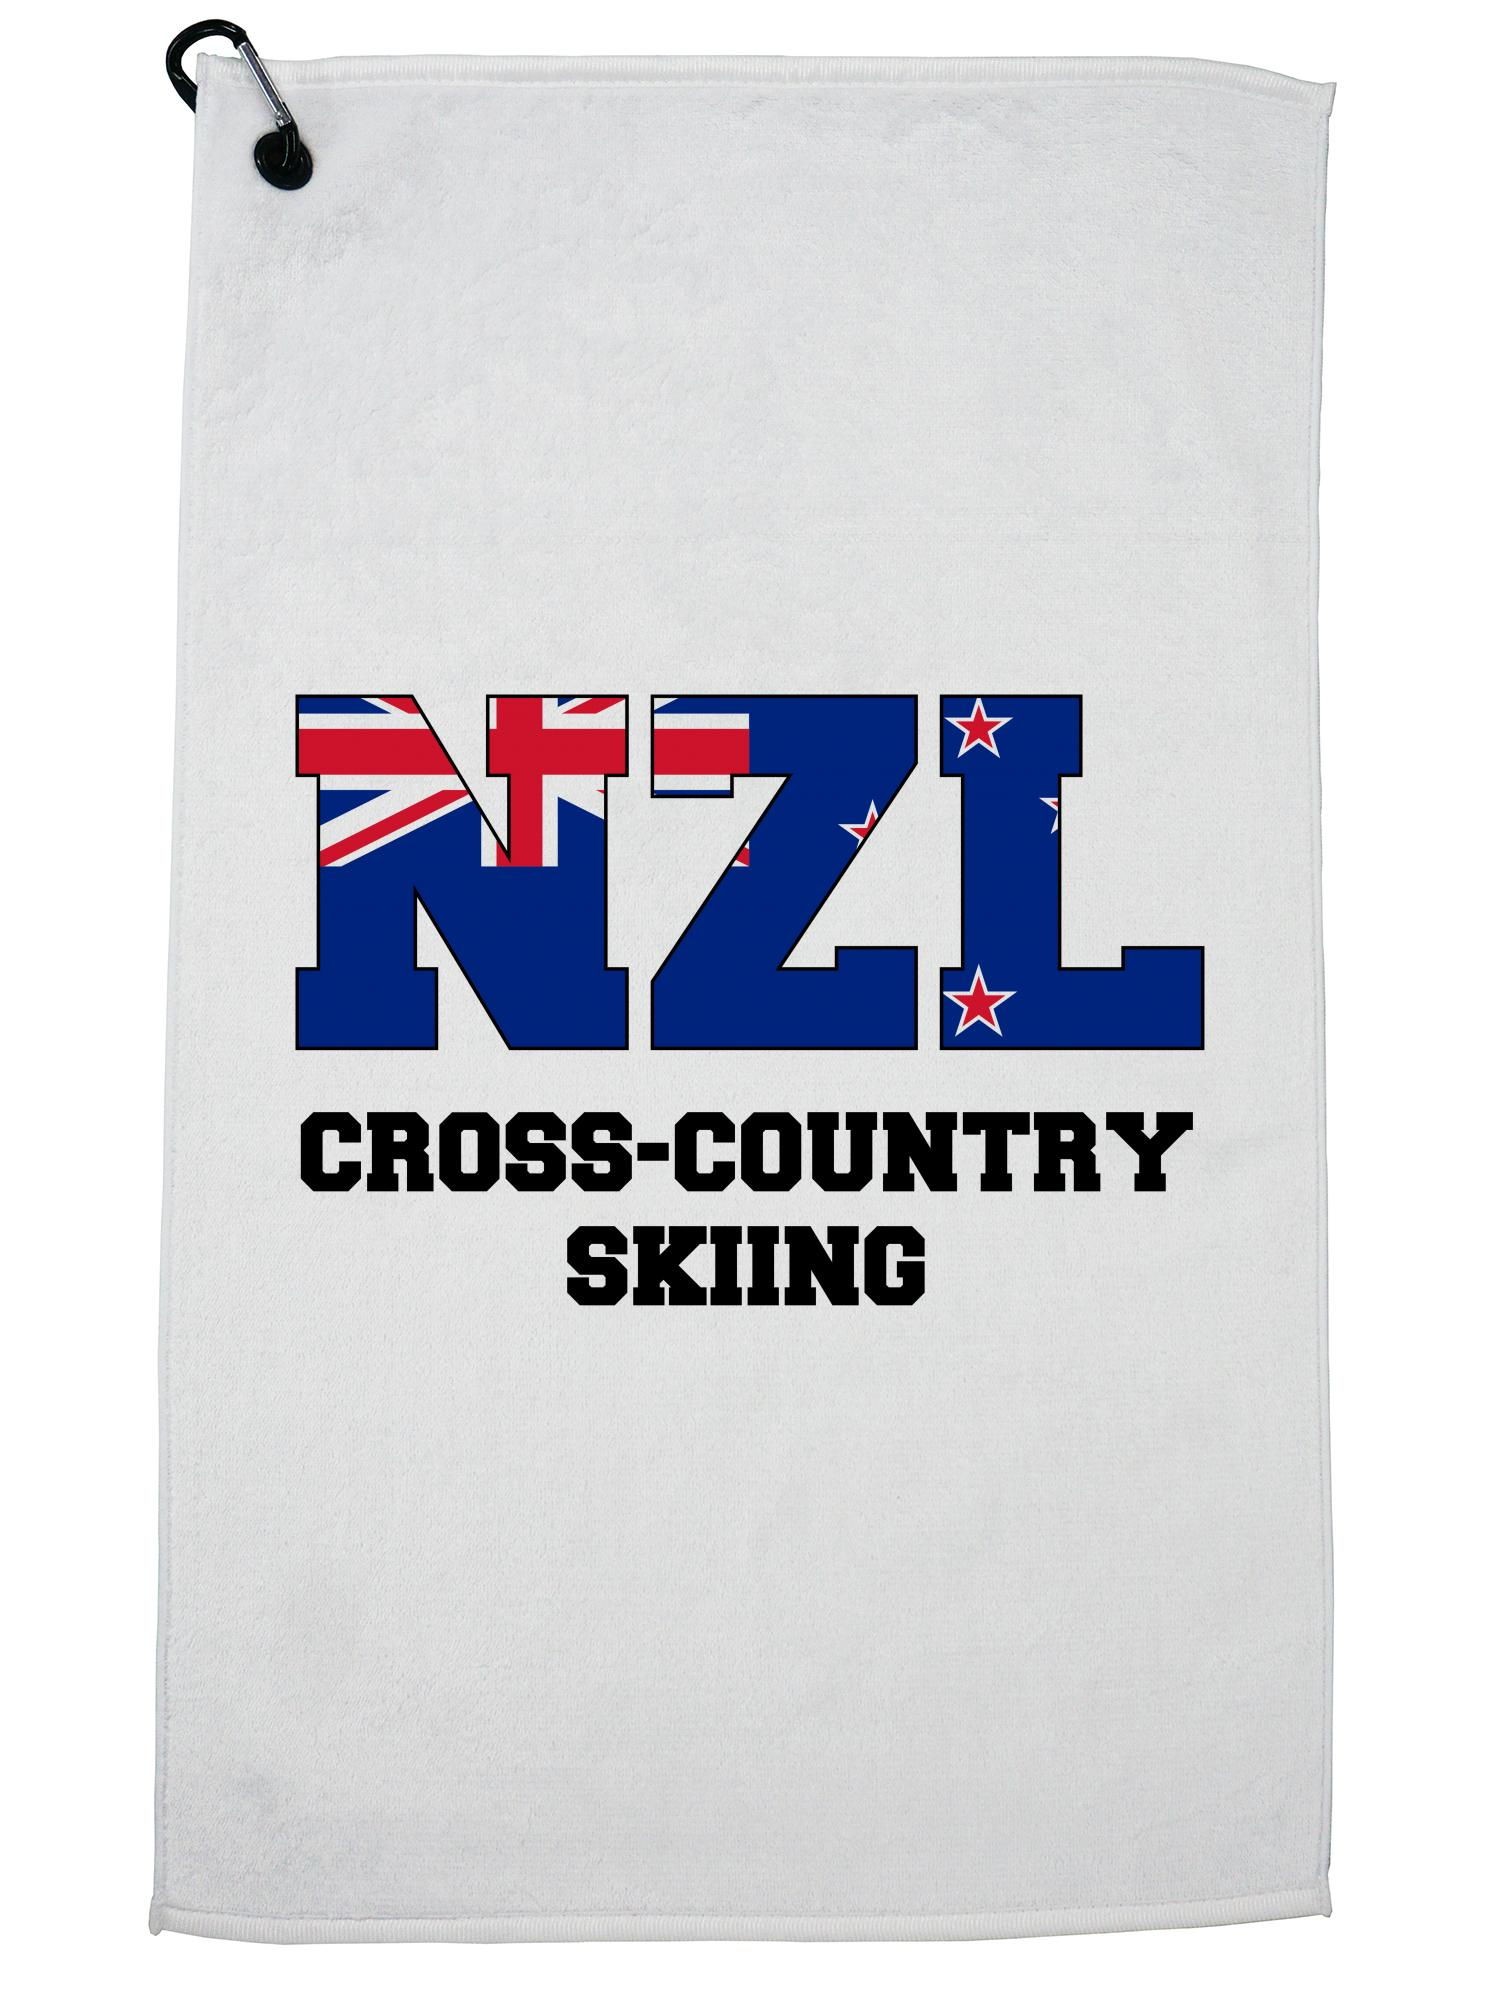 Kiwis Cross-Country Skiing Winter Olympic NZL Flag Golf Towel with Carabiner Clip by Hollywood Thread